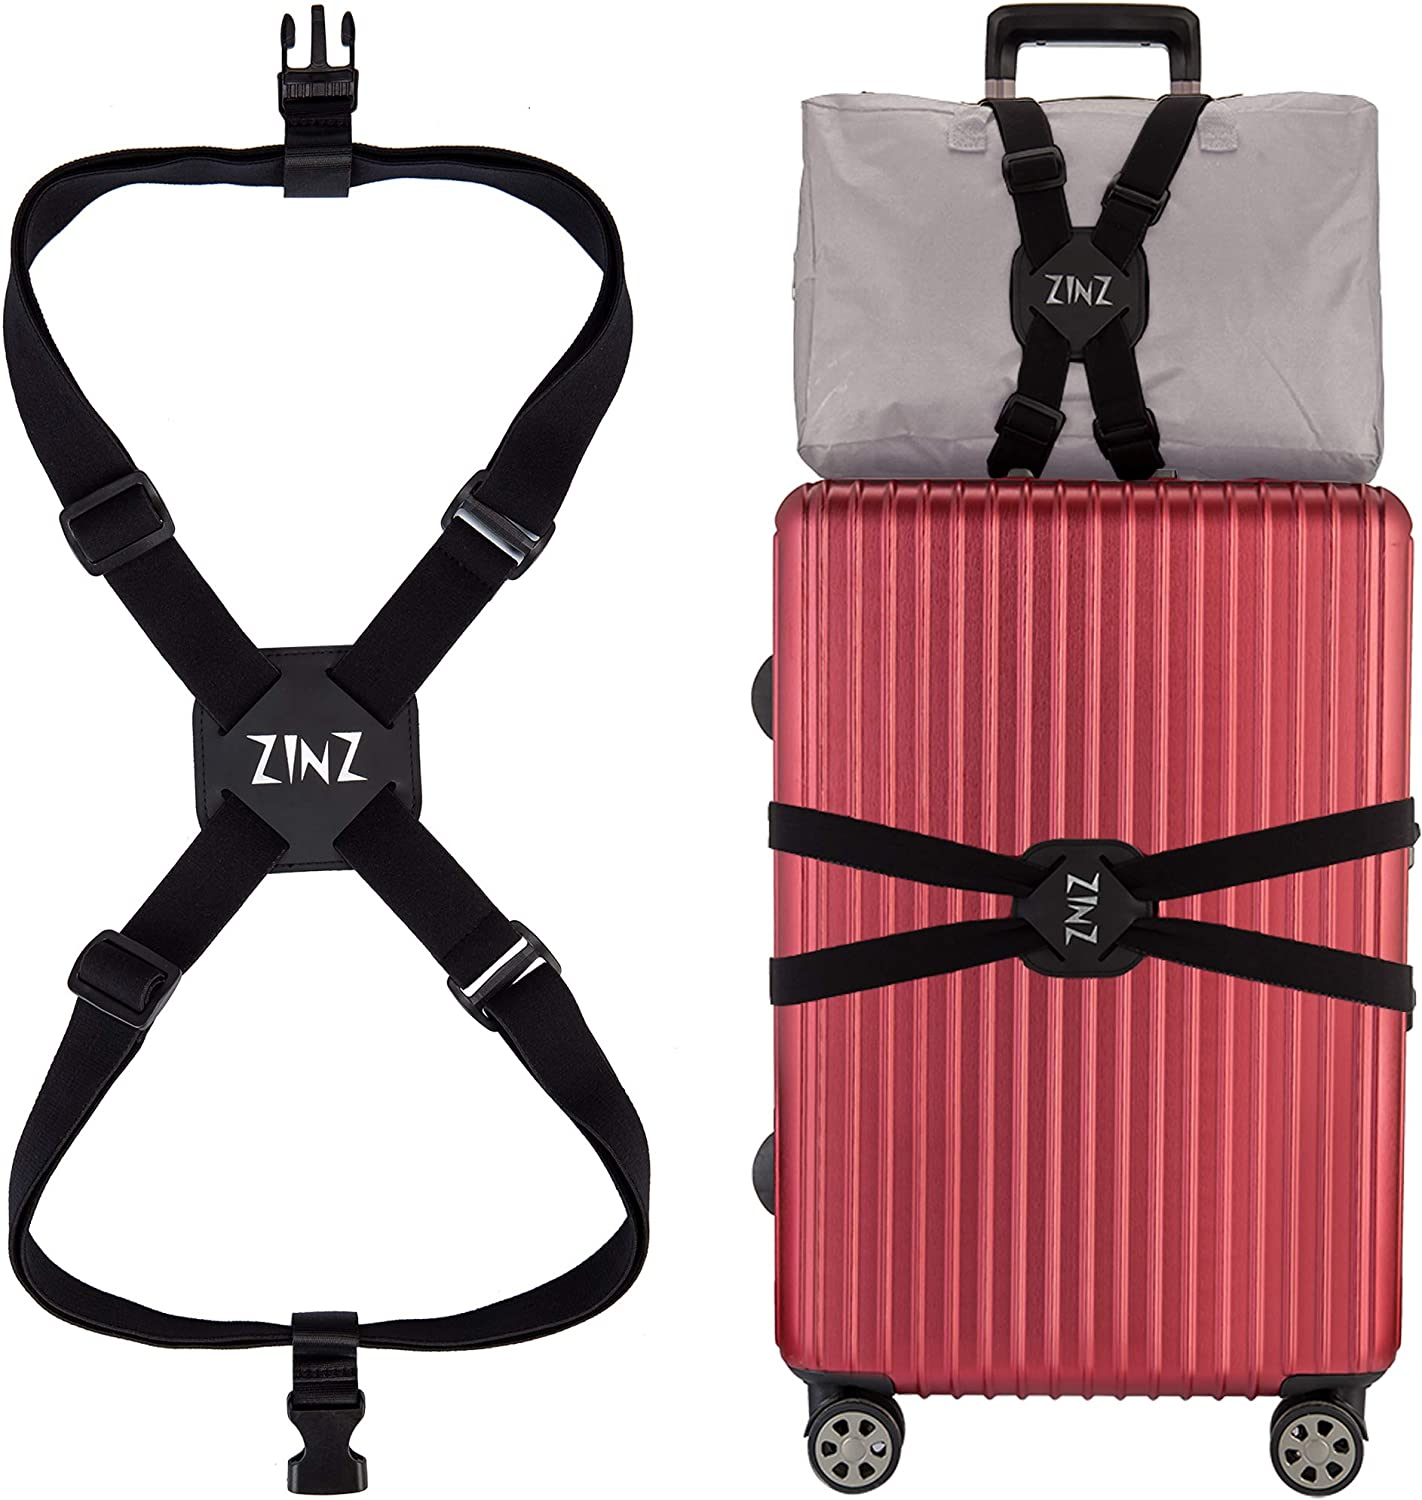 Luggage Strap High Elastic Suitcase Bungees Product Bag Complete Free Shipping Adjustable Belt